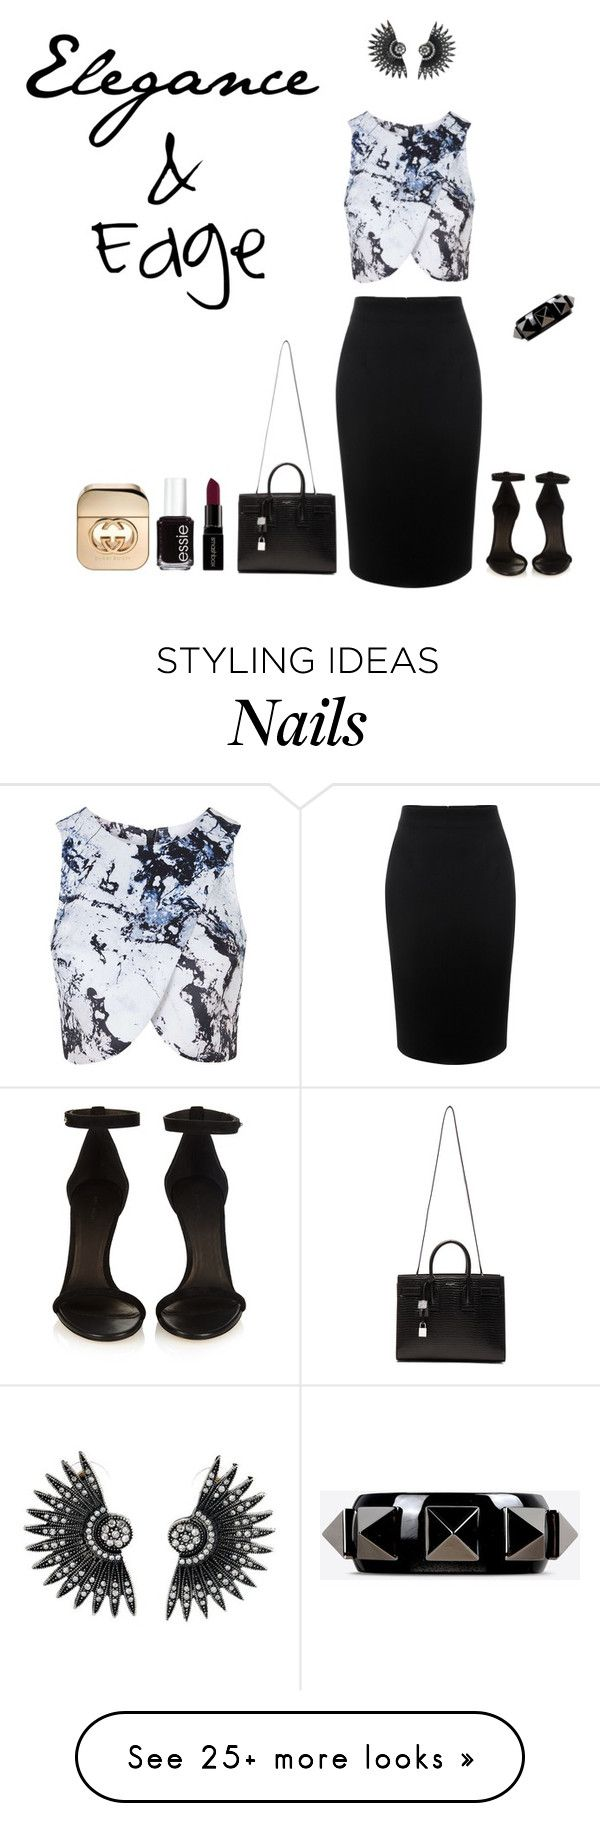 """Untitled #585"" by mrsmaggiemay on Polyvore featuring Alexander McQueen, Topshop, Yves Saint Laurent, Isabel Marant, Valentino, Smashbox, Essie, Gucci, women's clothing and women's fashion"